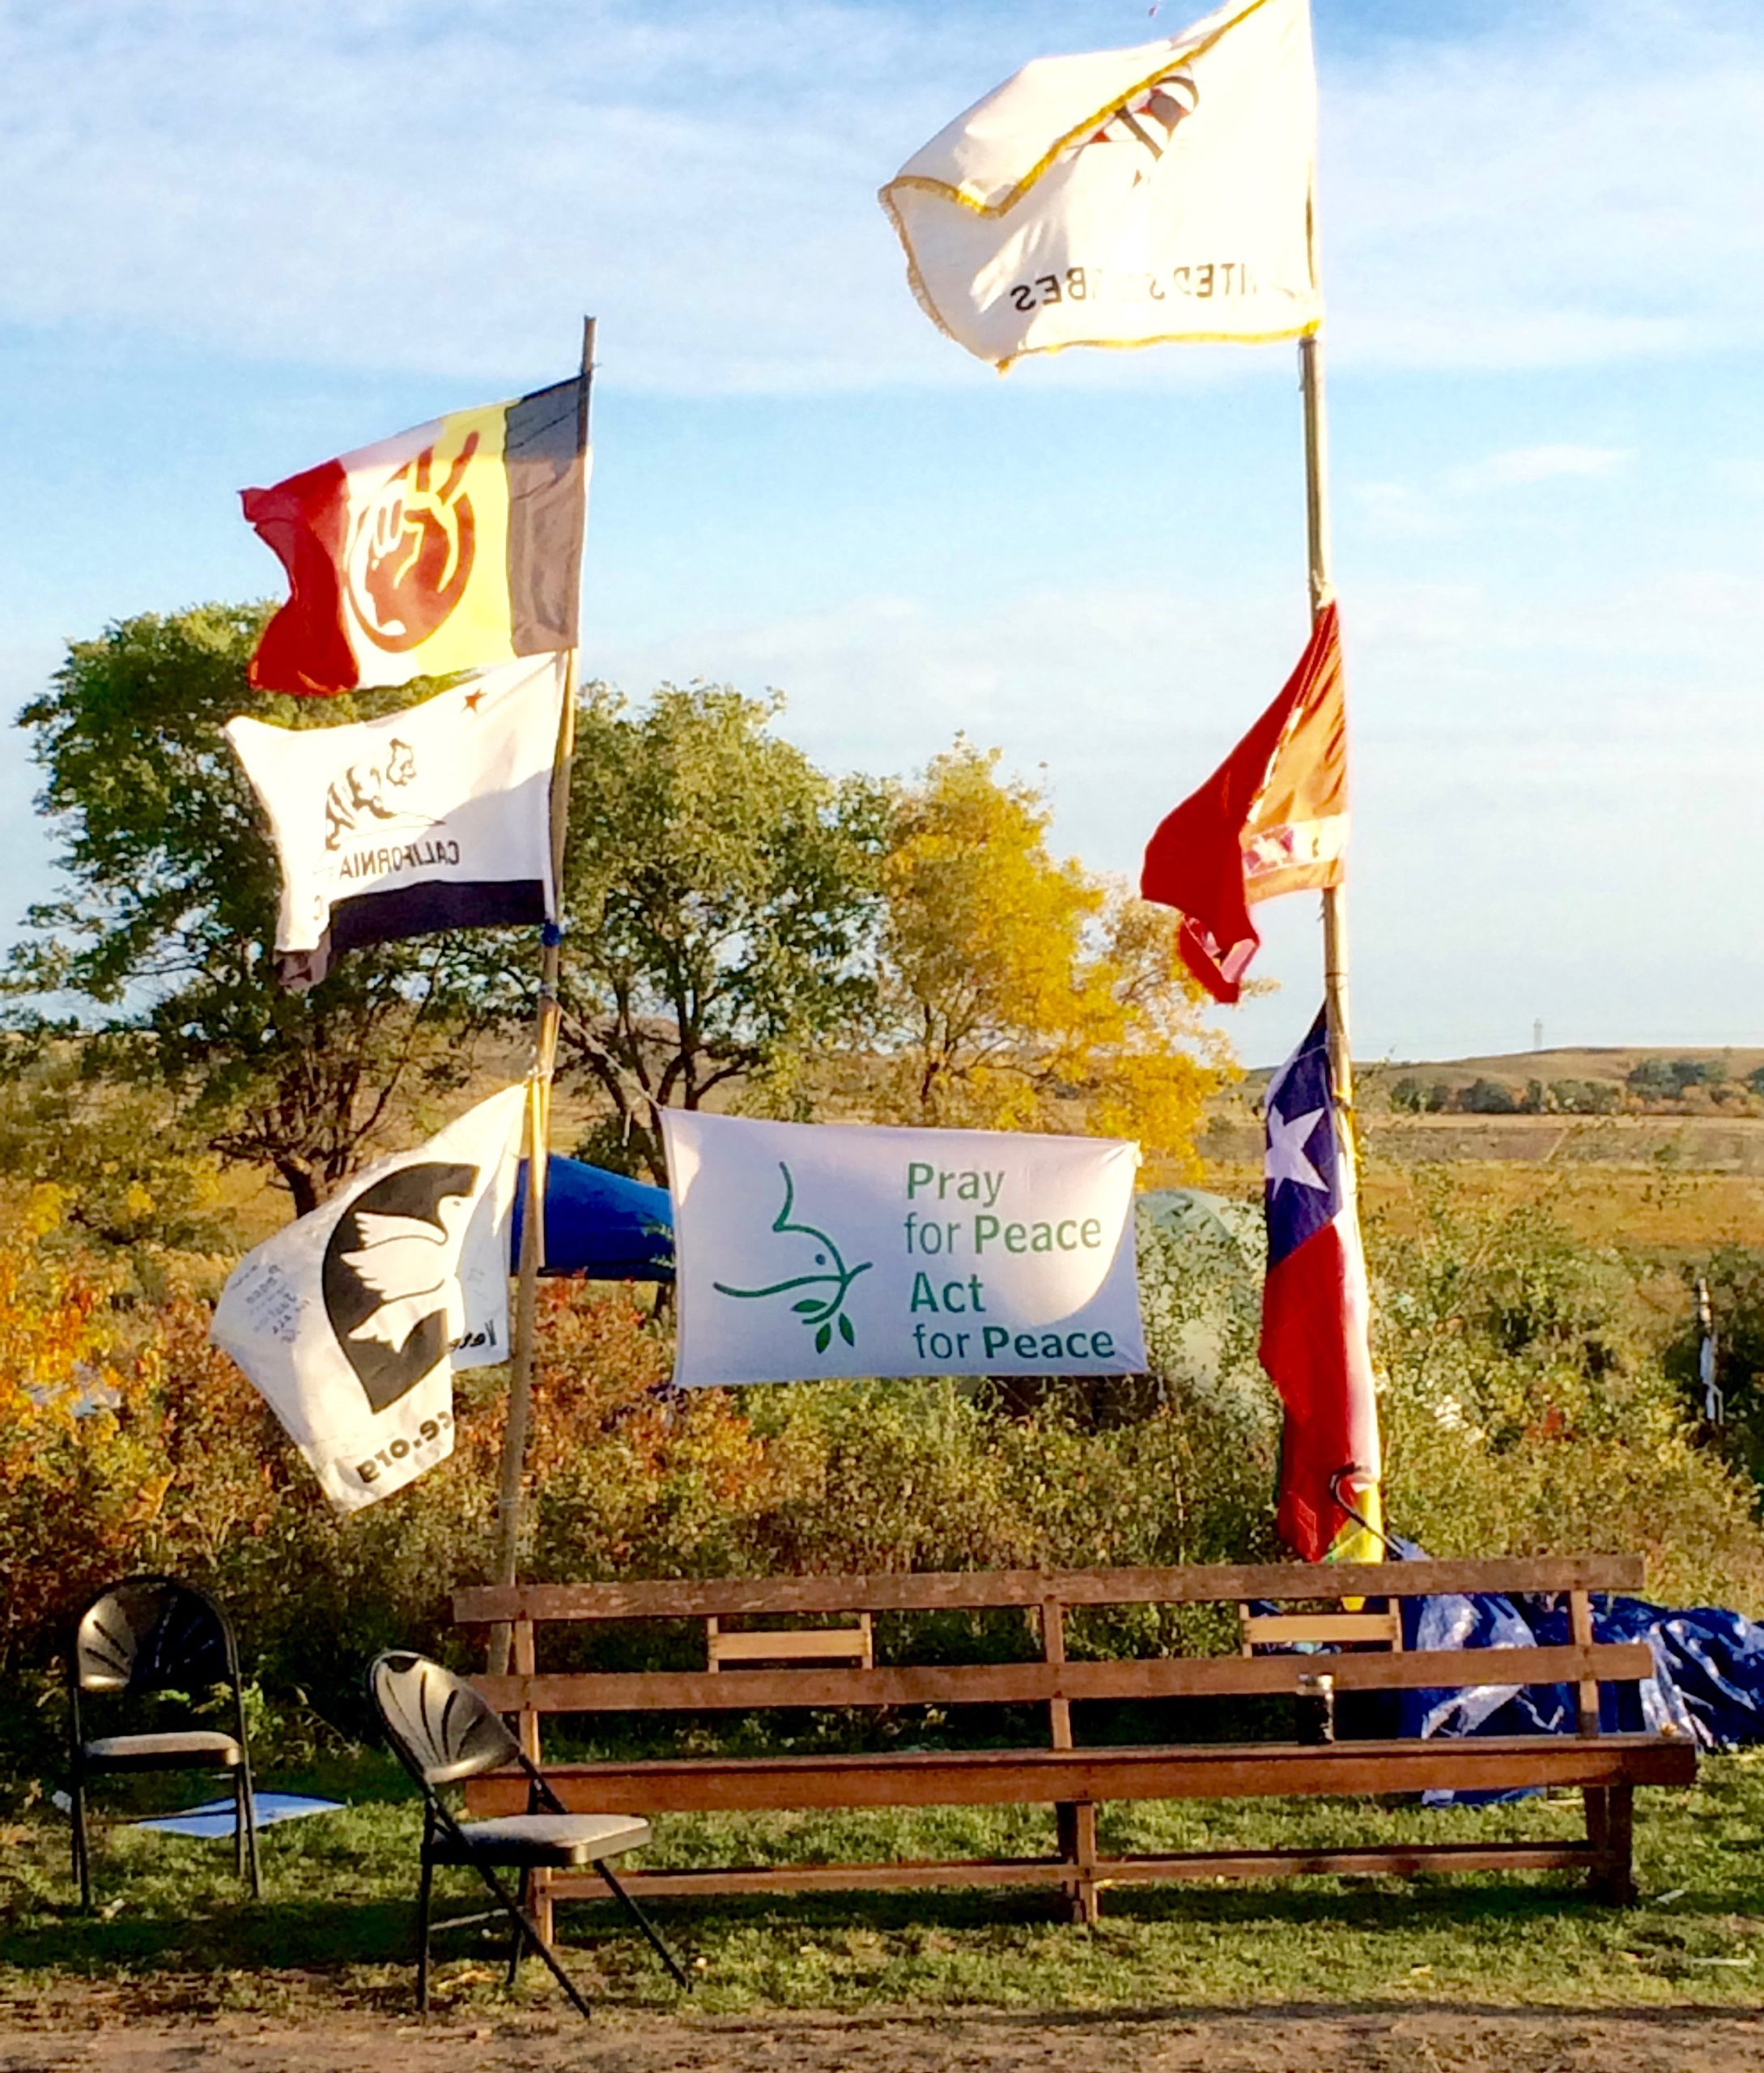 """Some Mennonites must have been at Sacred Stone Camp before us! Among the flags raised there was this """"Pray for Peace, Act for Peace"""" banner. Photo credit: Ken Gingerich"""